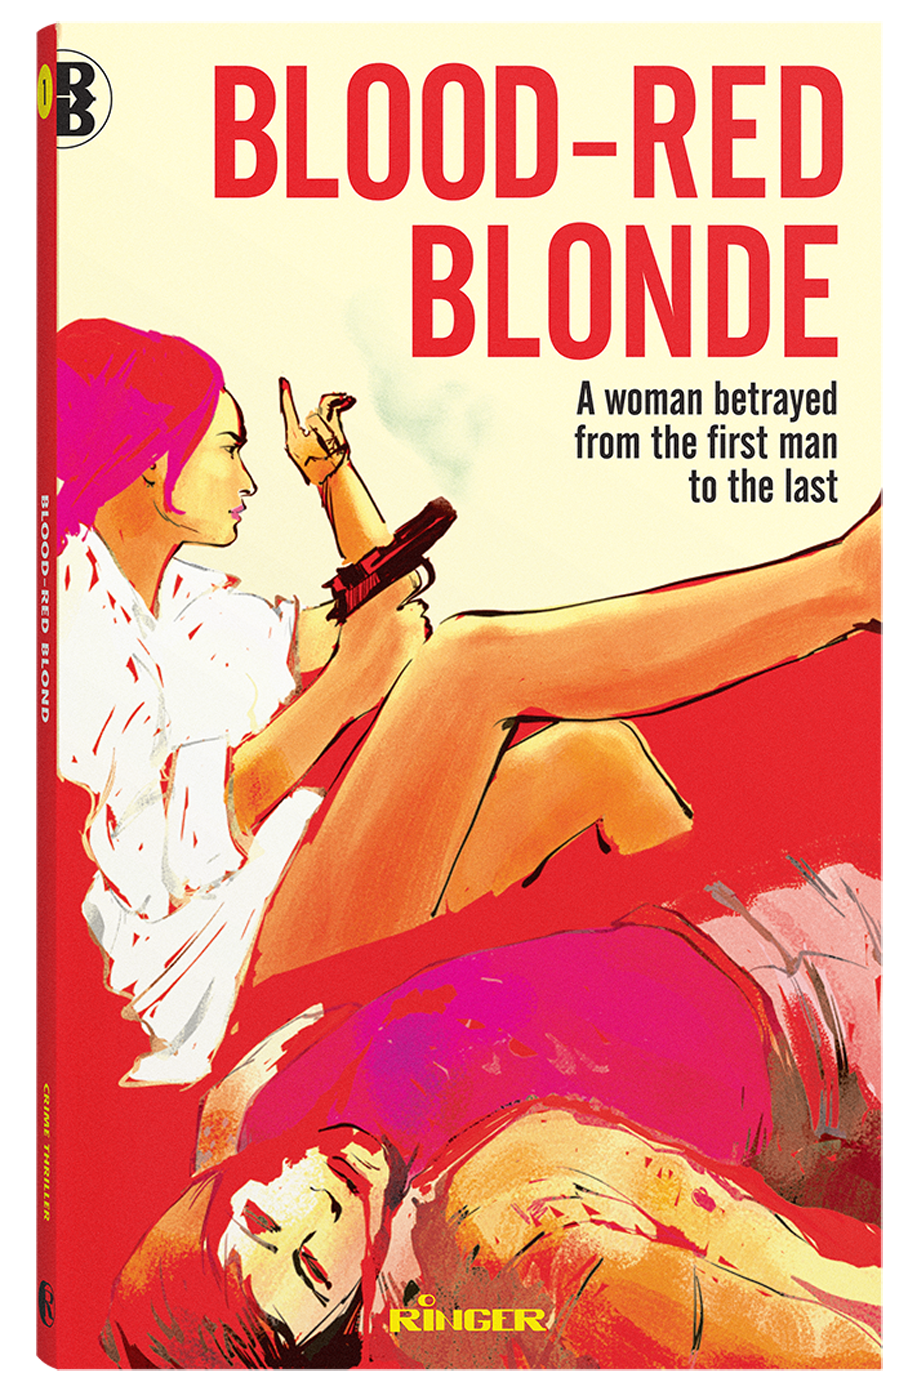 Blood-Red Blond - Book Packaging - Ringer Publishing